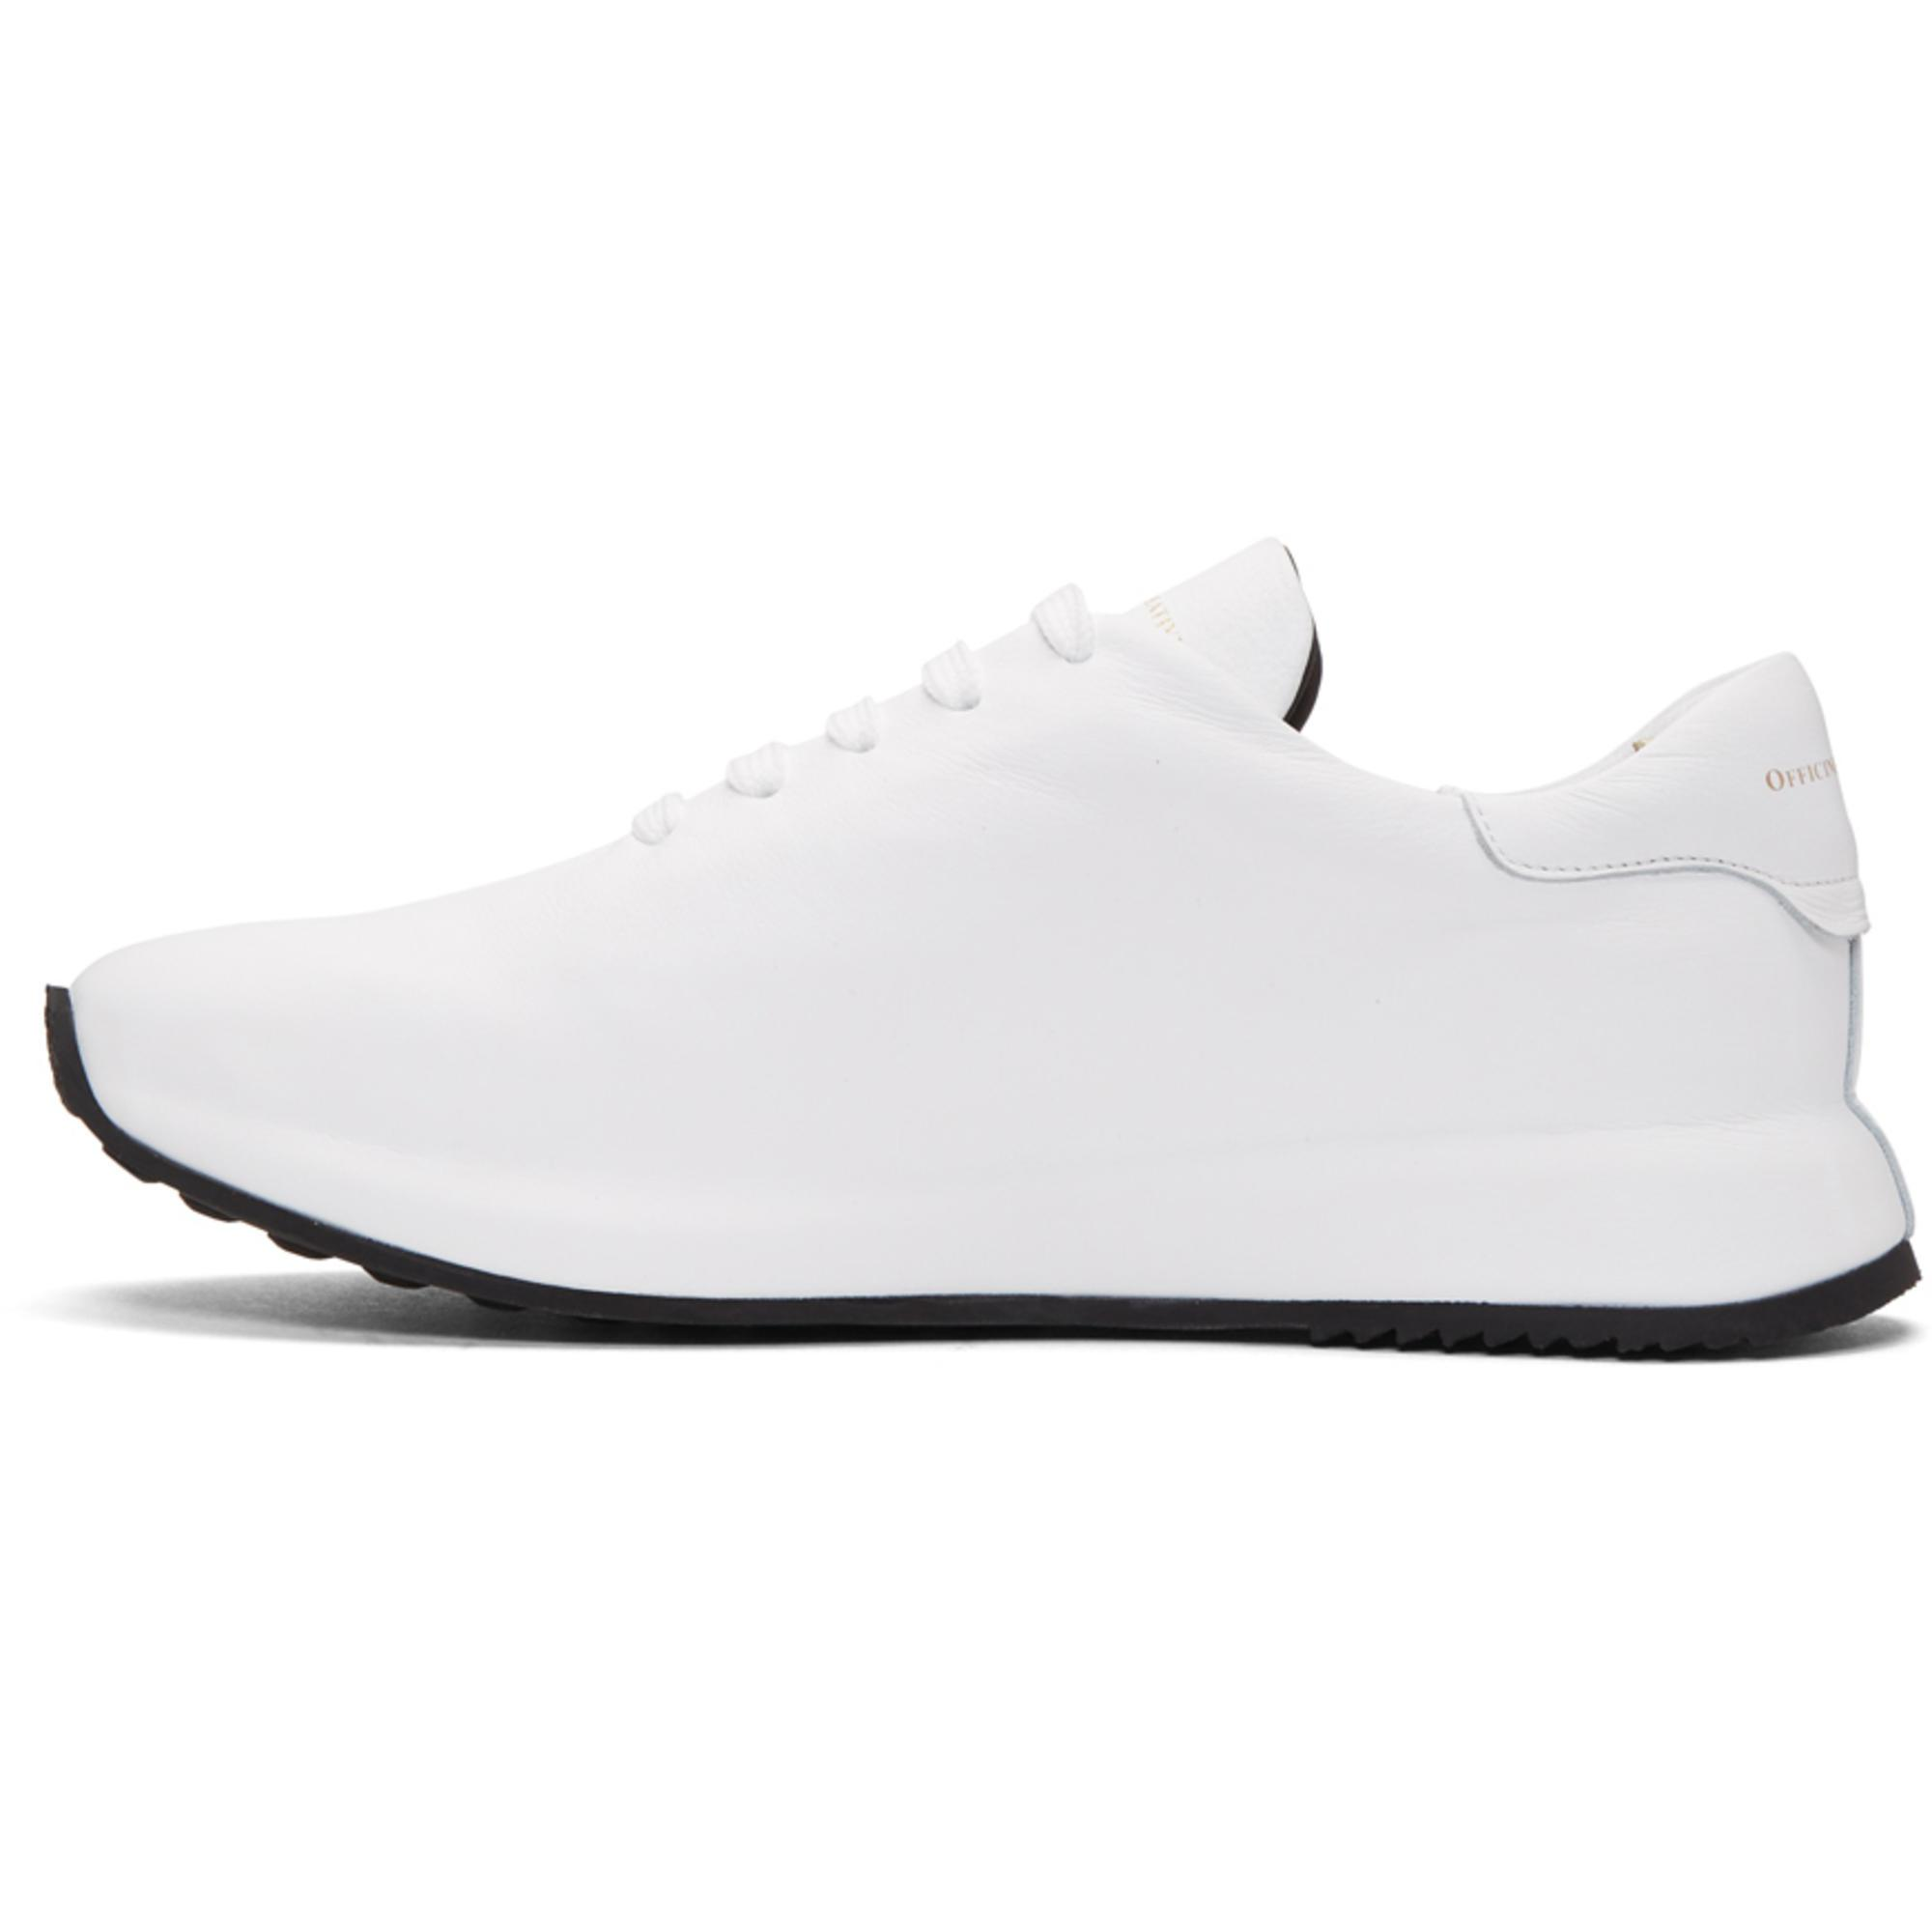 Officine Creative White Race 1 Sneakers footlocker pictures online outlet cheap sale extremely cheap discounts g7o04mS